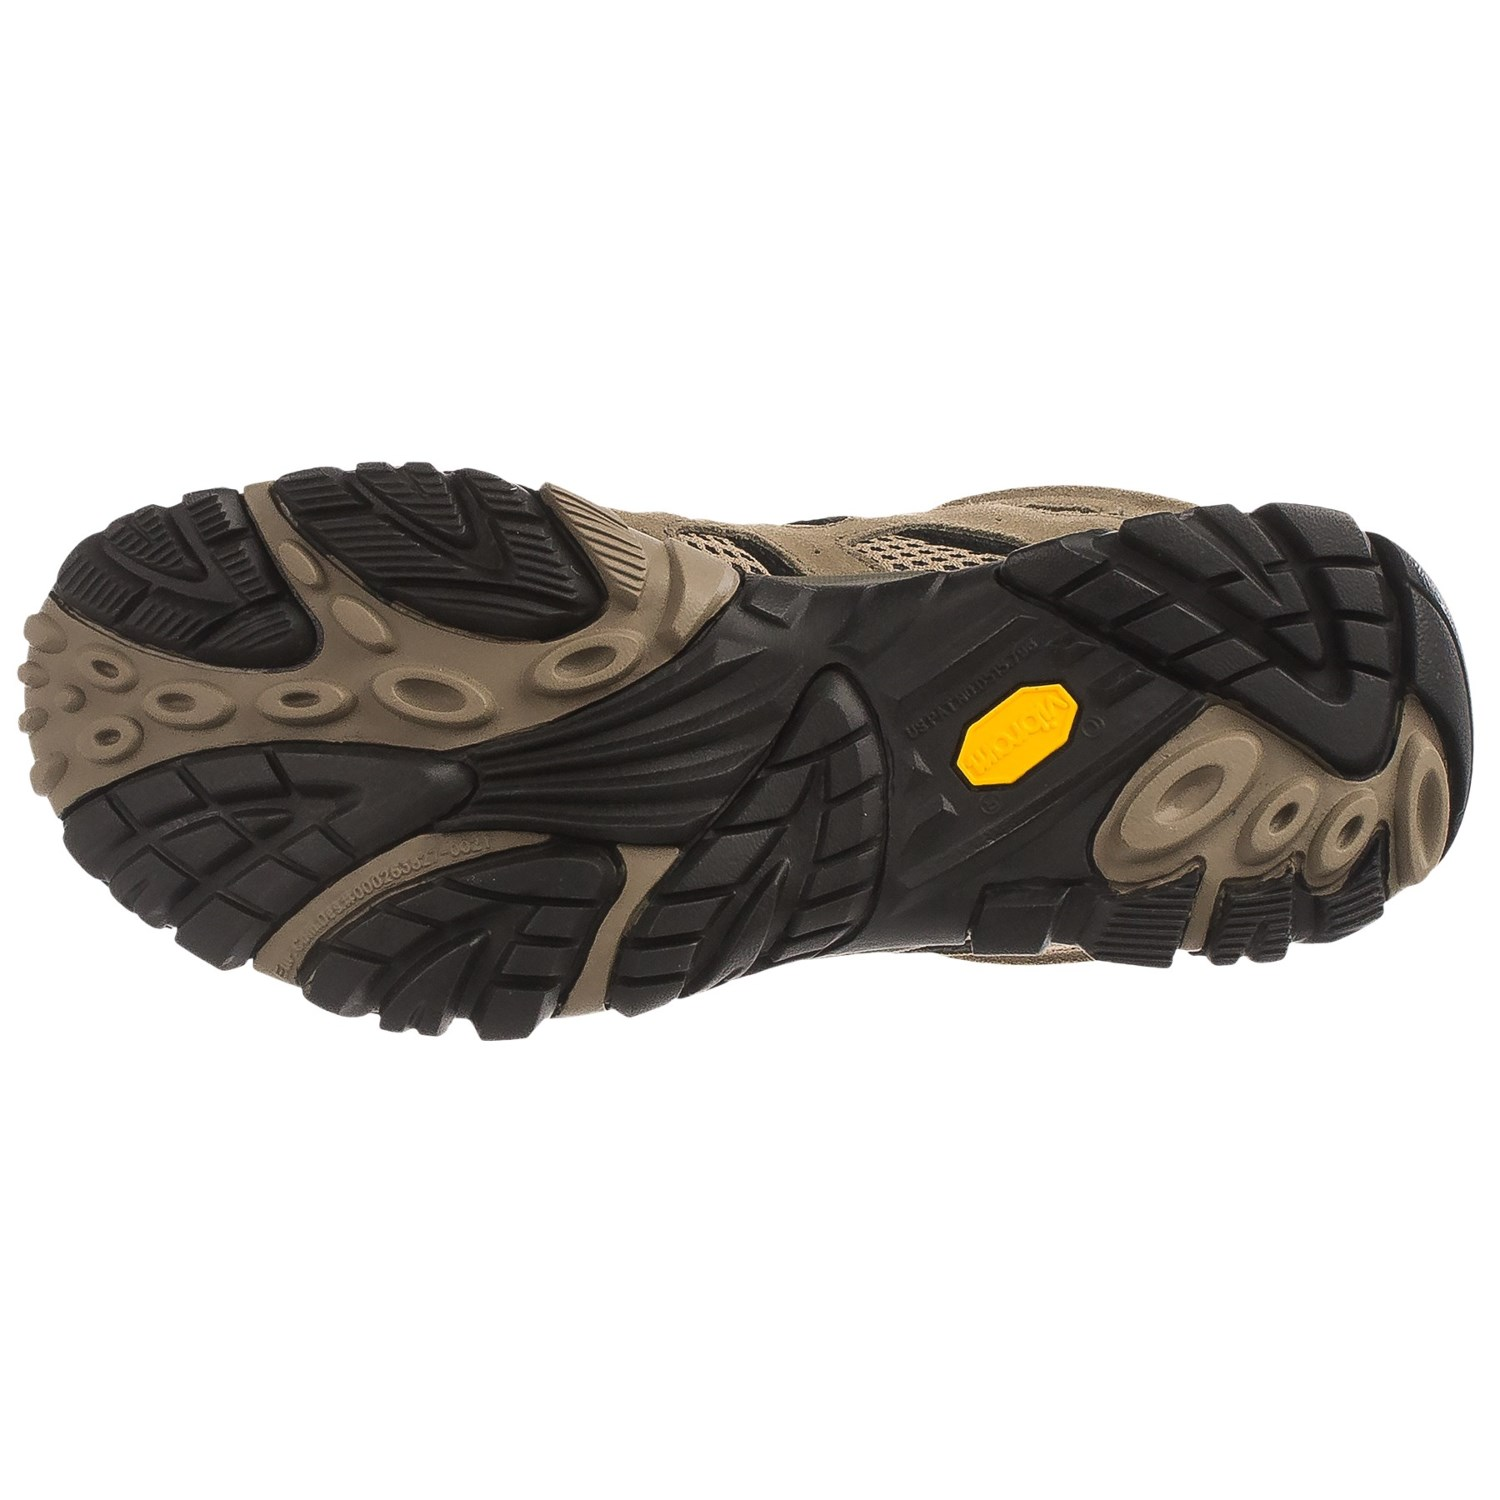 Merrell Moab Ventilator Hiking Shoes Review